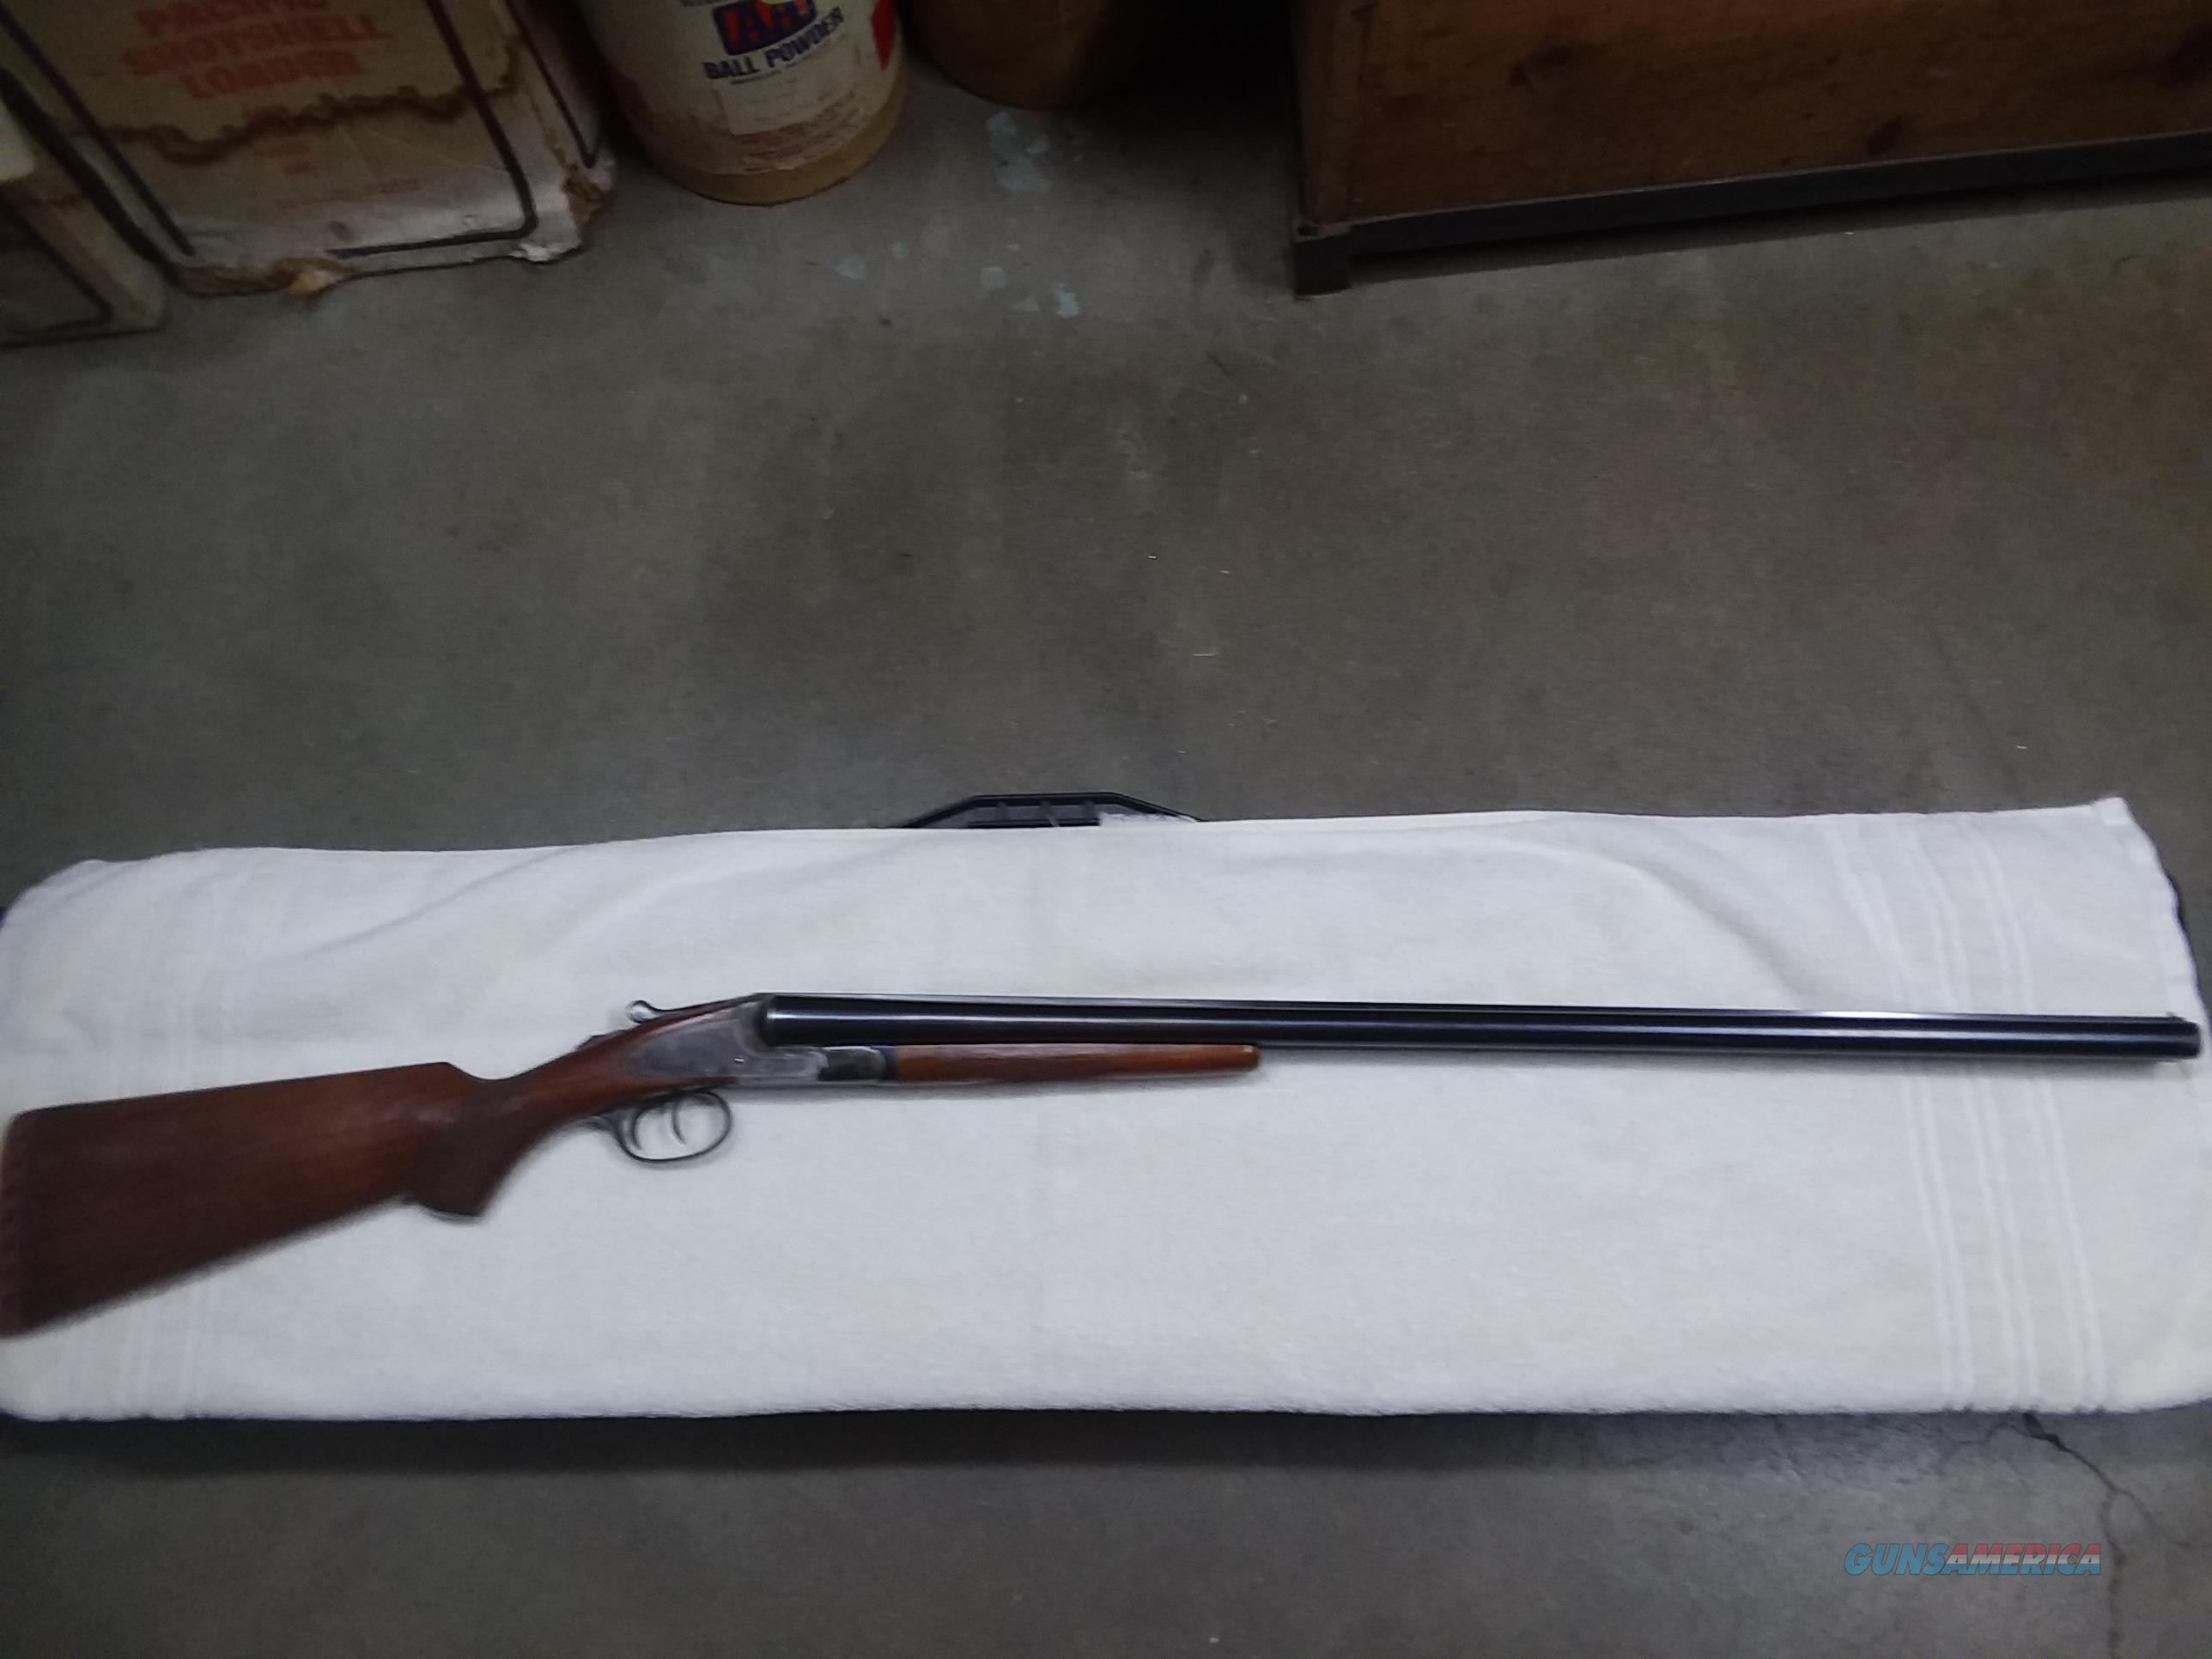 L. C. Smith 12 ga. Field  Guns > Shotguns > L.C. Smith Shotguns